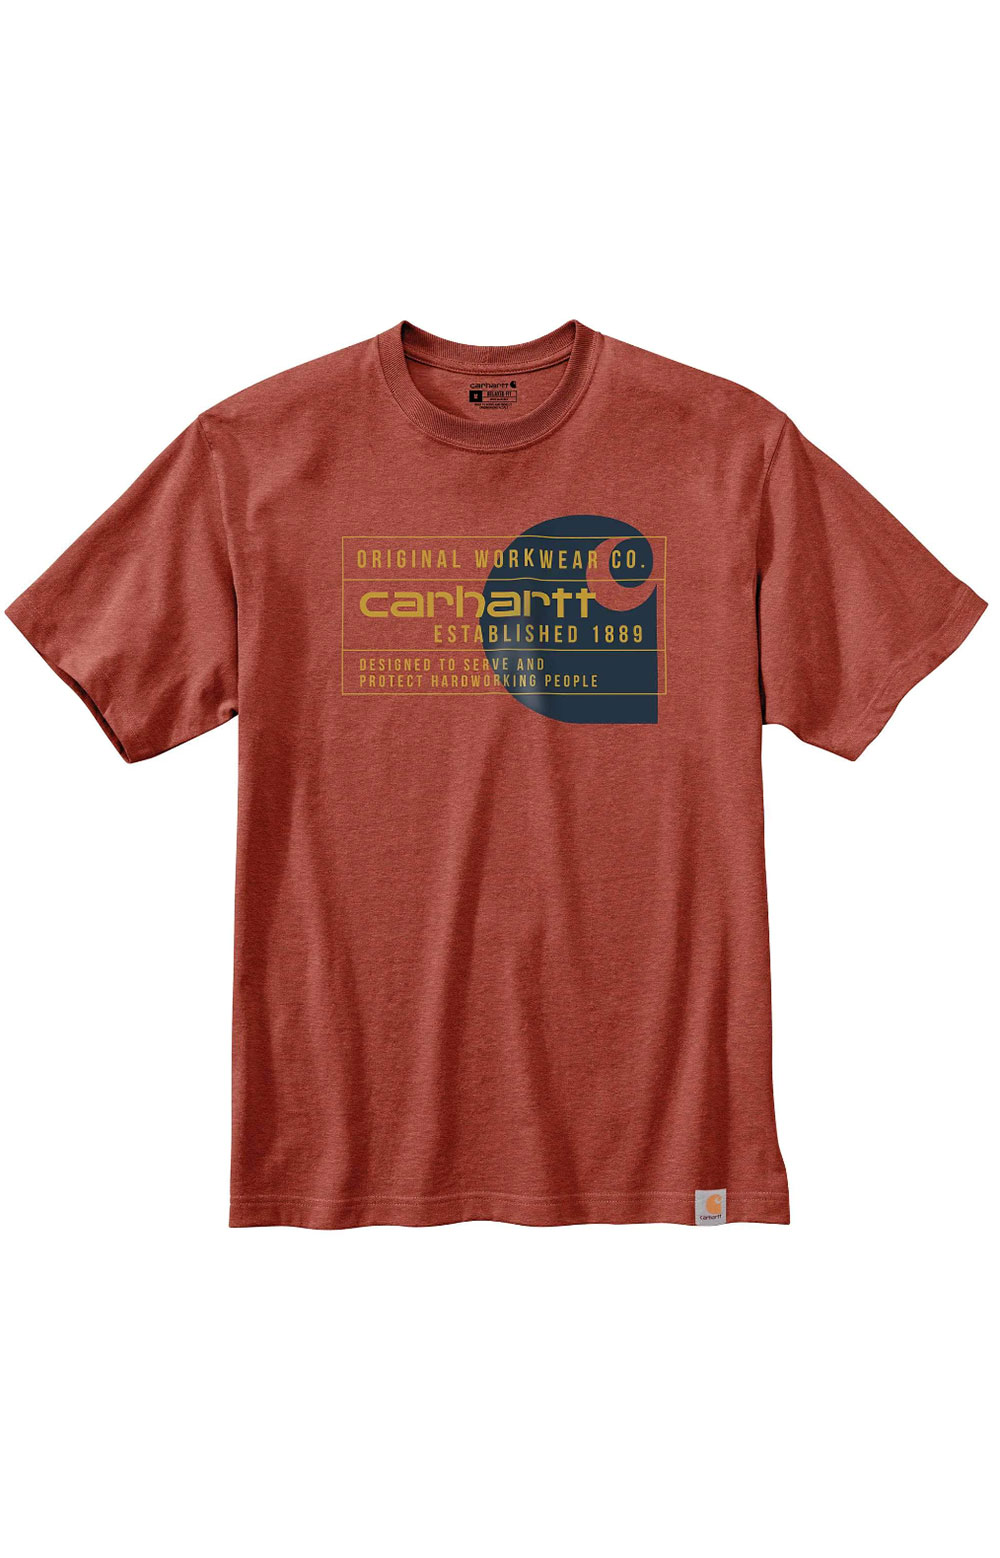 (104610) Relaxed Fit HW S/S Workwear Graphic T-Shirt - Auburn Heather